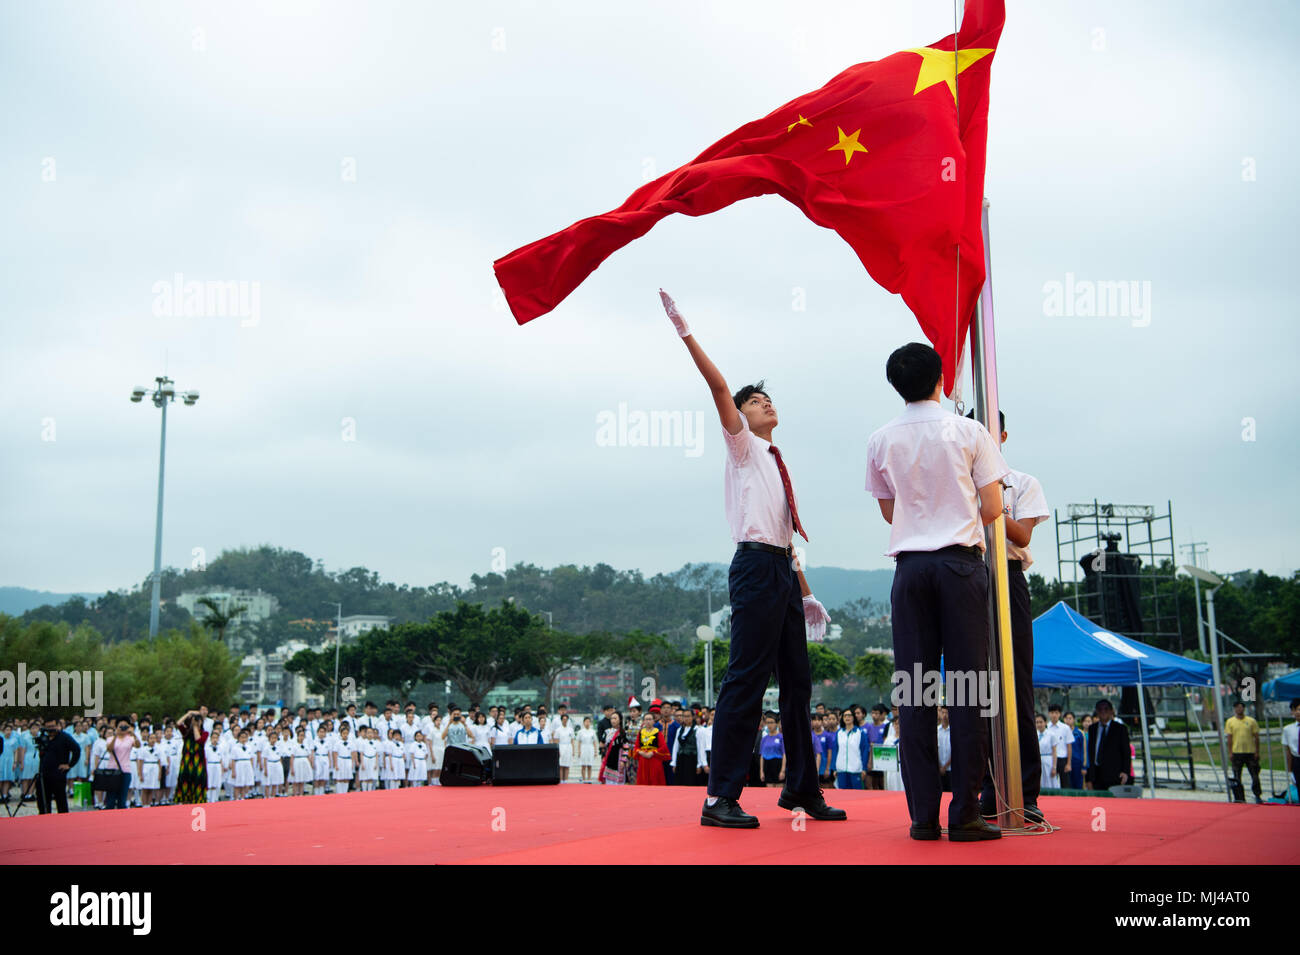 Macao. 4th May, 2018. Students of Hou Kong Middle School participate in a flag-raising ceremony marking the Chinese Youth Day in south China's Macao, May 4, 2018. Friday marked the anniversary of the May 4th Movement, a patriotic campaign that started from universities and was launched in 1919 by young Chinese to fight imperialism and feudalism. May 4th later was established as Youth Day in 1949 by the Chinese government. Credit: Cheong Kam Ka/Xinhua/Alamy Live News - Stock Image